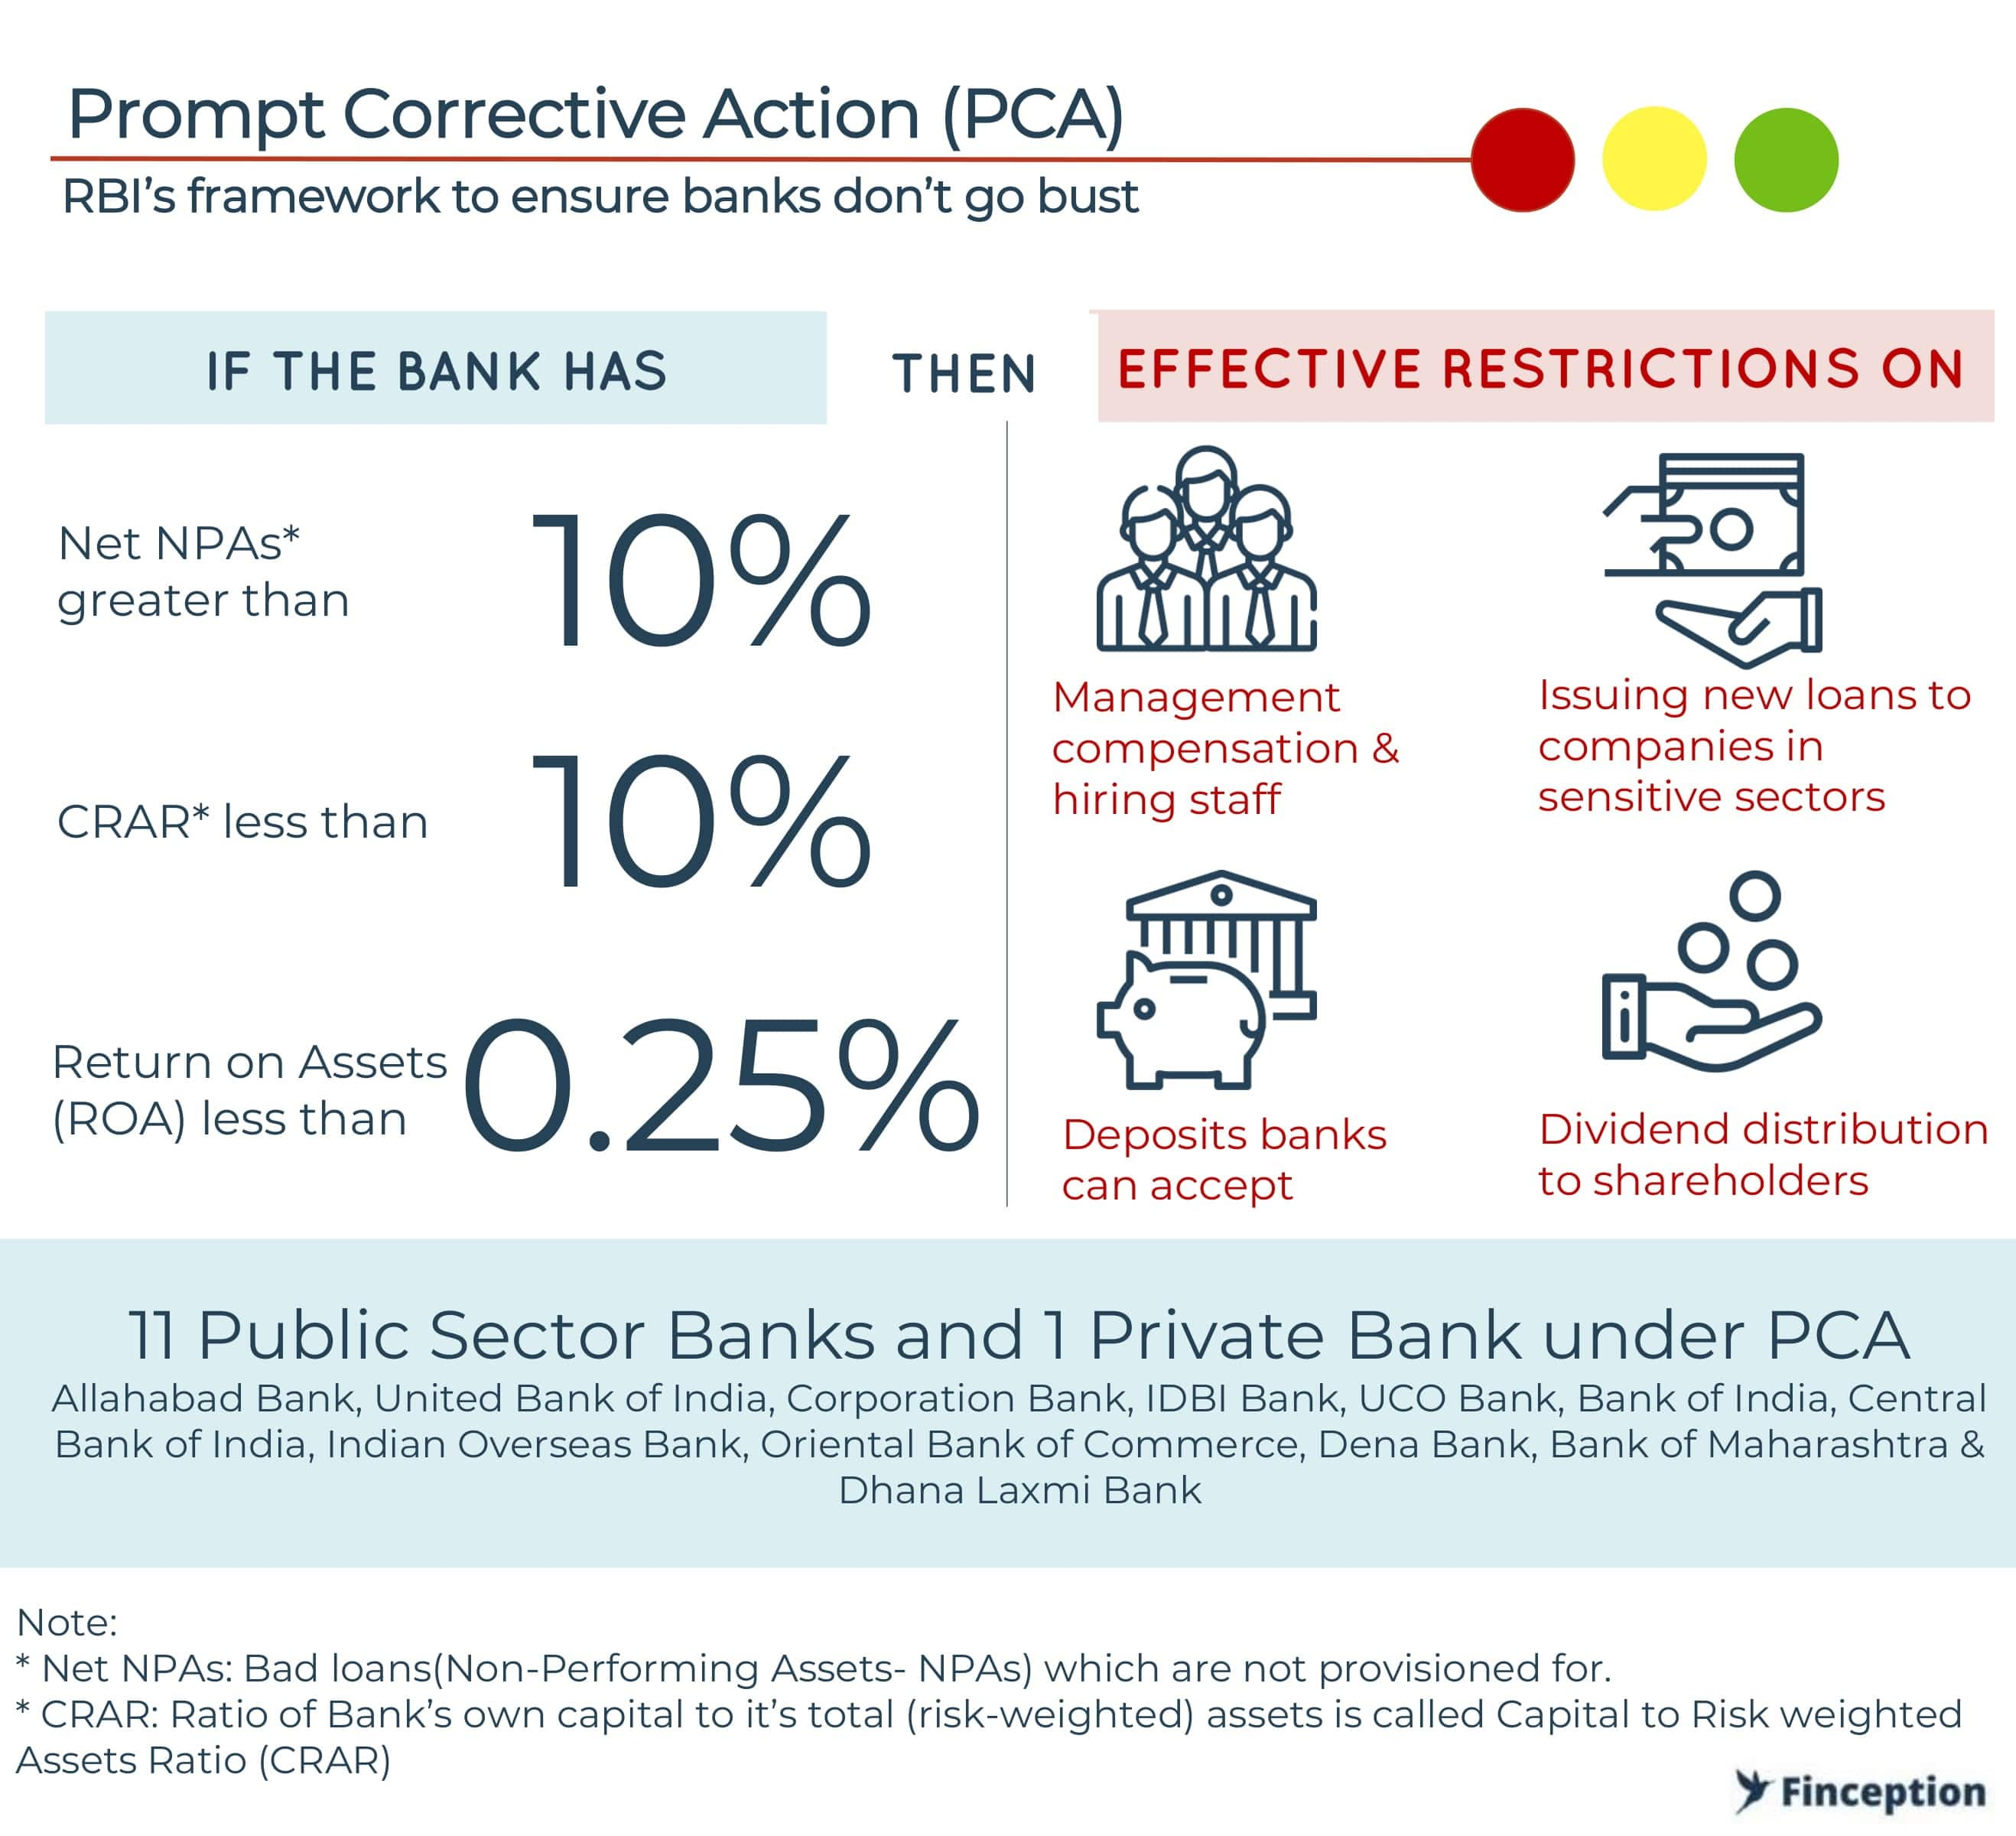 RBI's PCA framework enforces restrictions on banks when PCA conditions are triggered